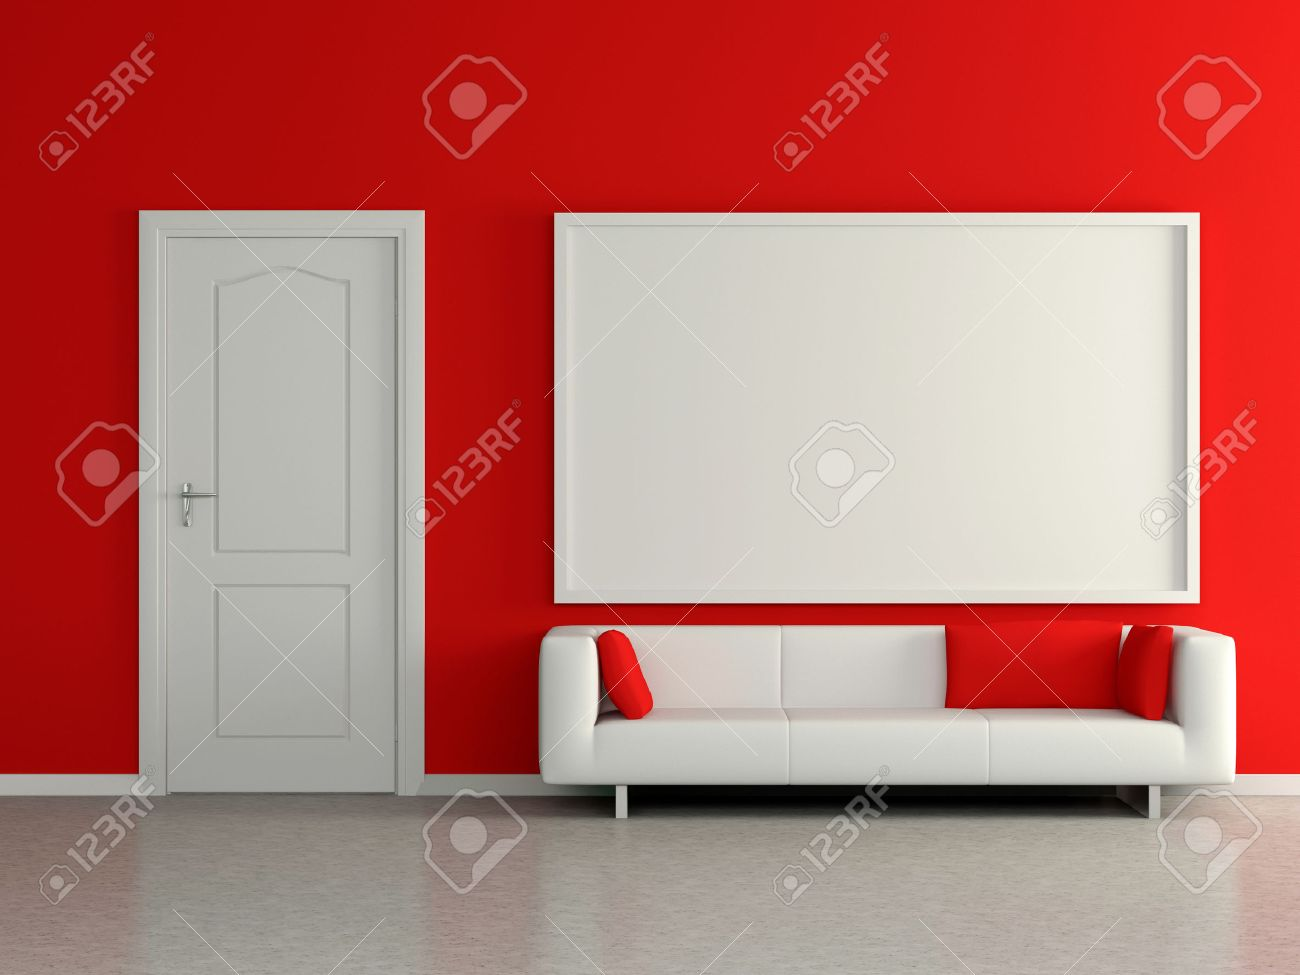 Modern Home Interior With Sofa Near The Red Wall And Painting ...